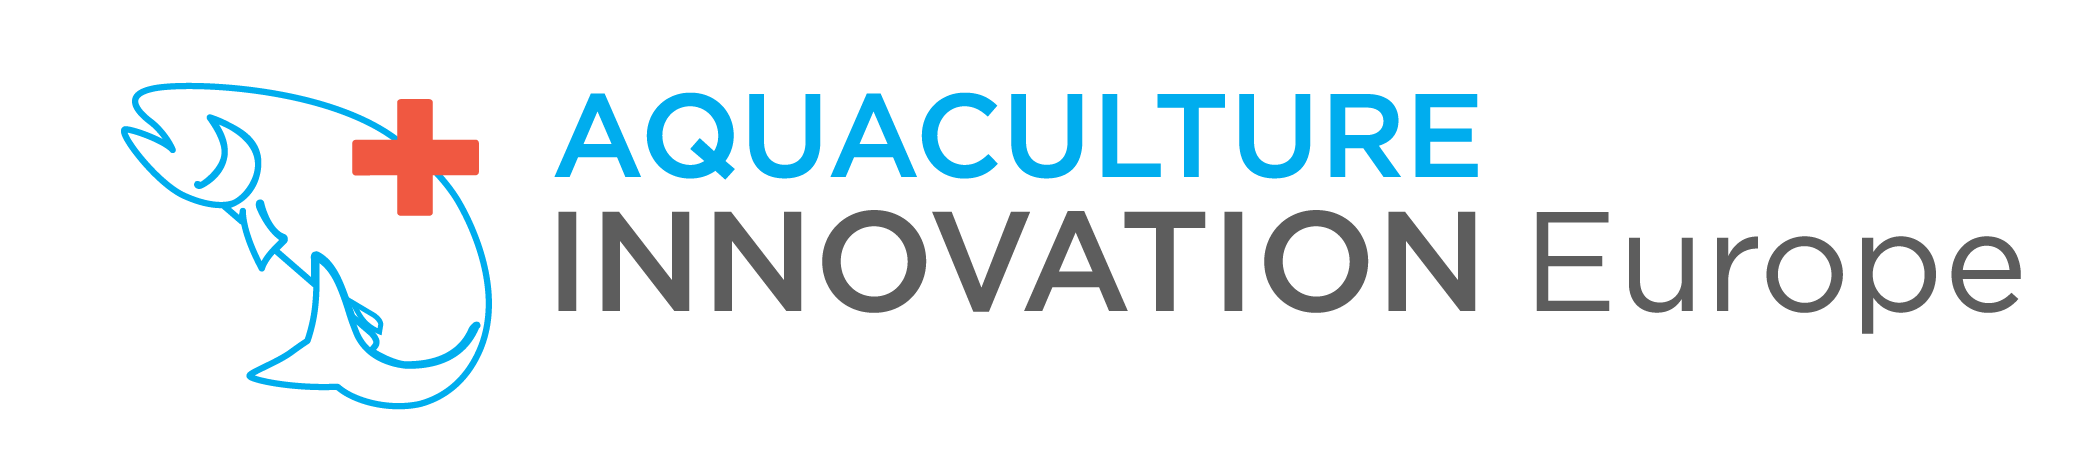 Aquaculture Innovation Summit, logo